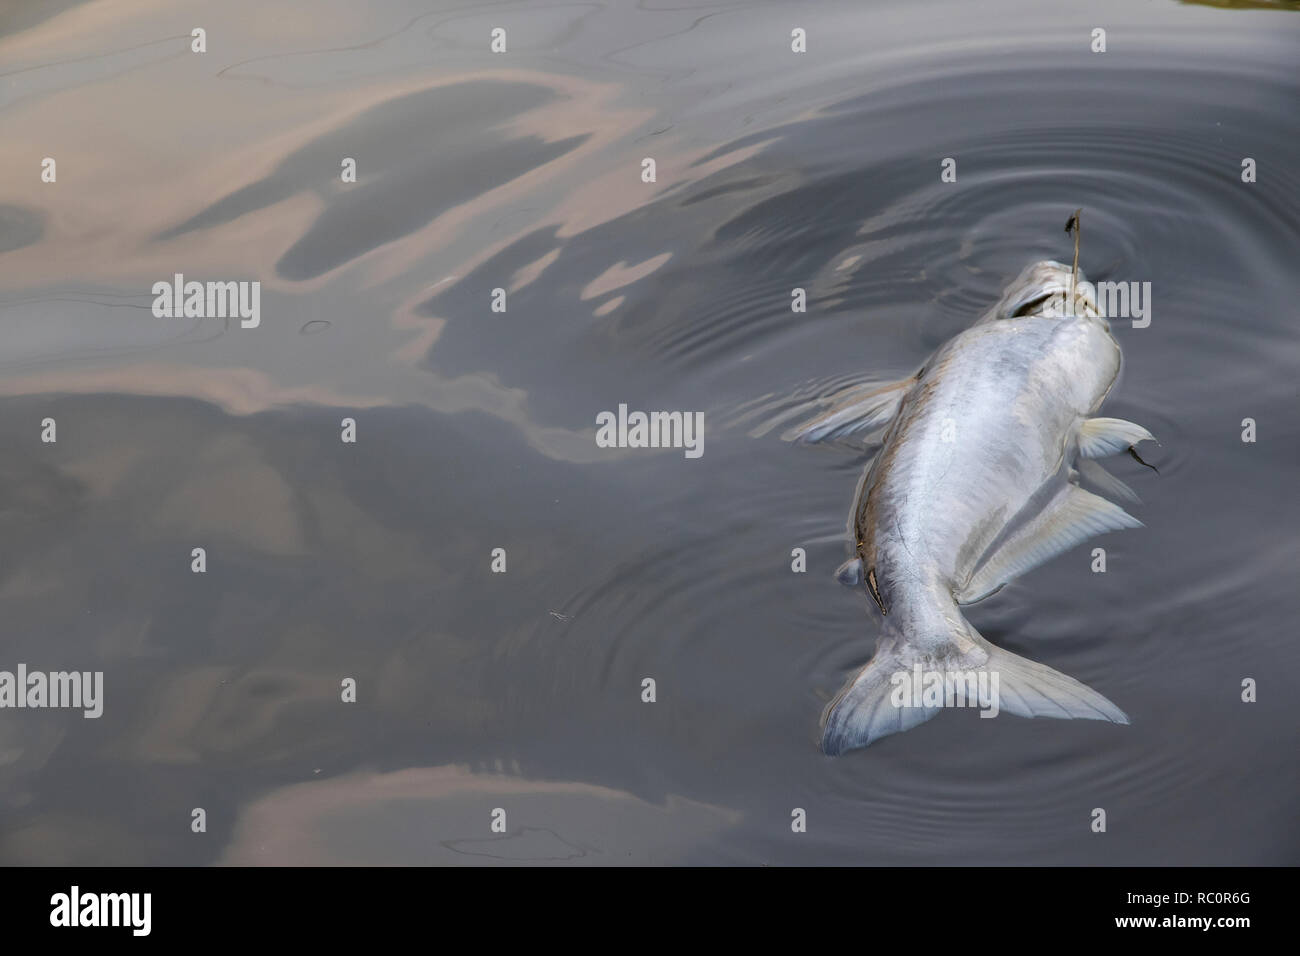 Dead Fish Floating In The Waste Water Background Stock Photo Alamy